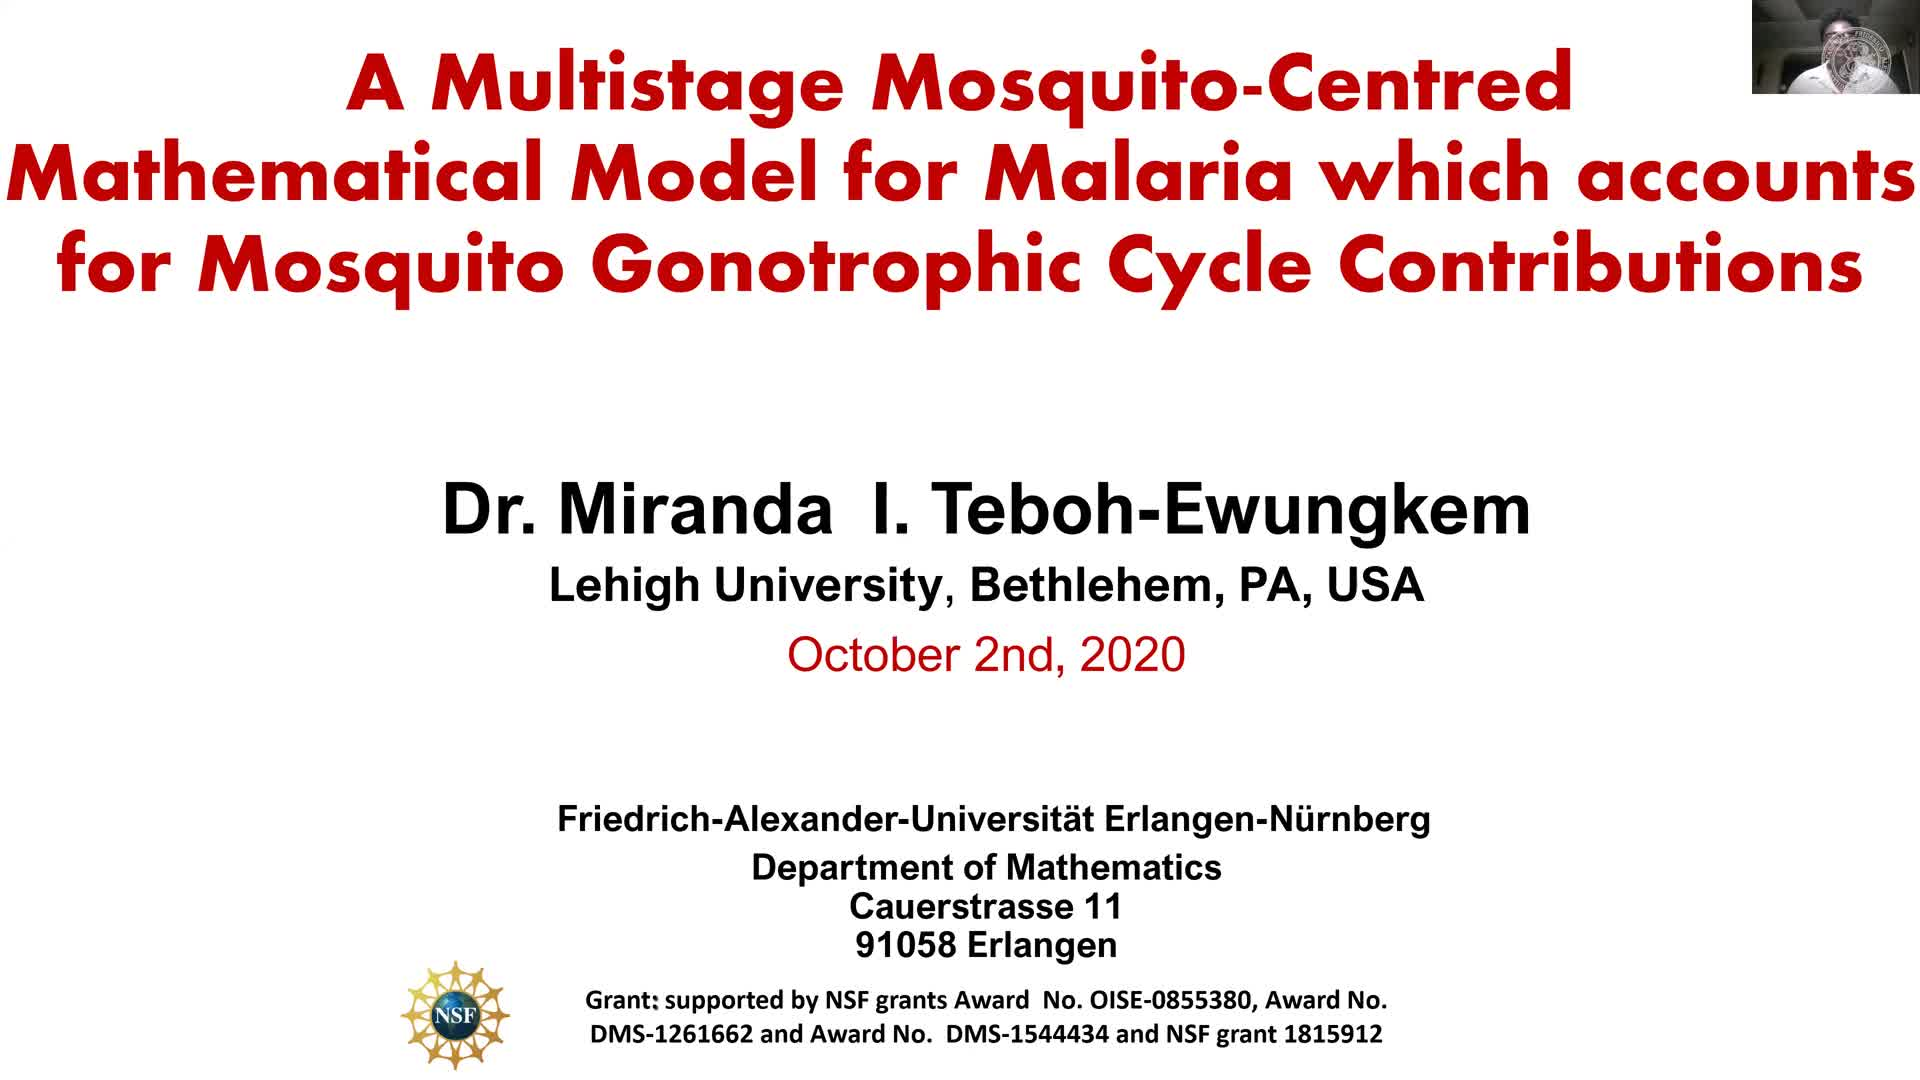 A Multistage Mosquito-Centred-Mathematical Model for Malaria which accounts for Mosquito Gonotrophic Cycle Contributions (Miranda Teboh-Ewungkem, Lehigh University) preview image